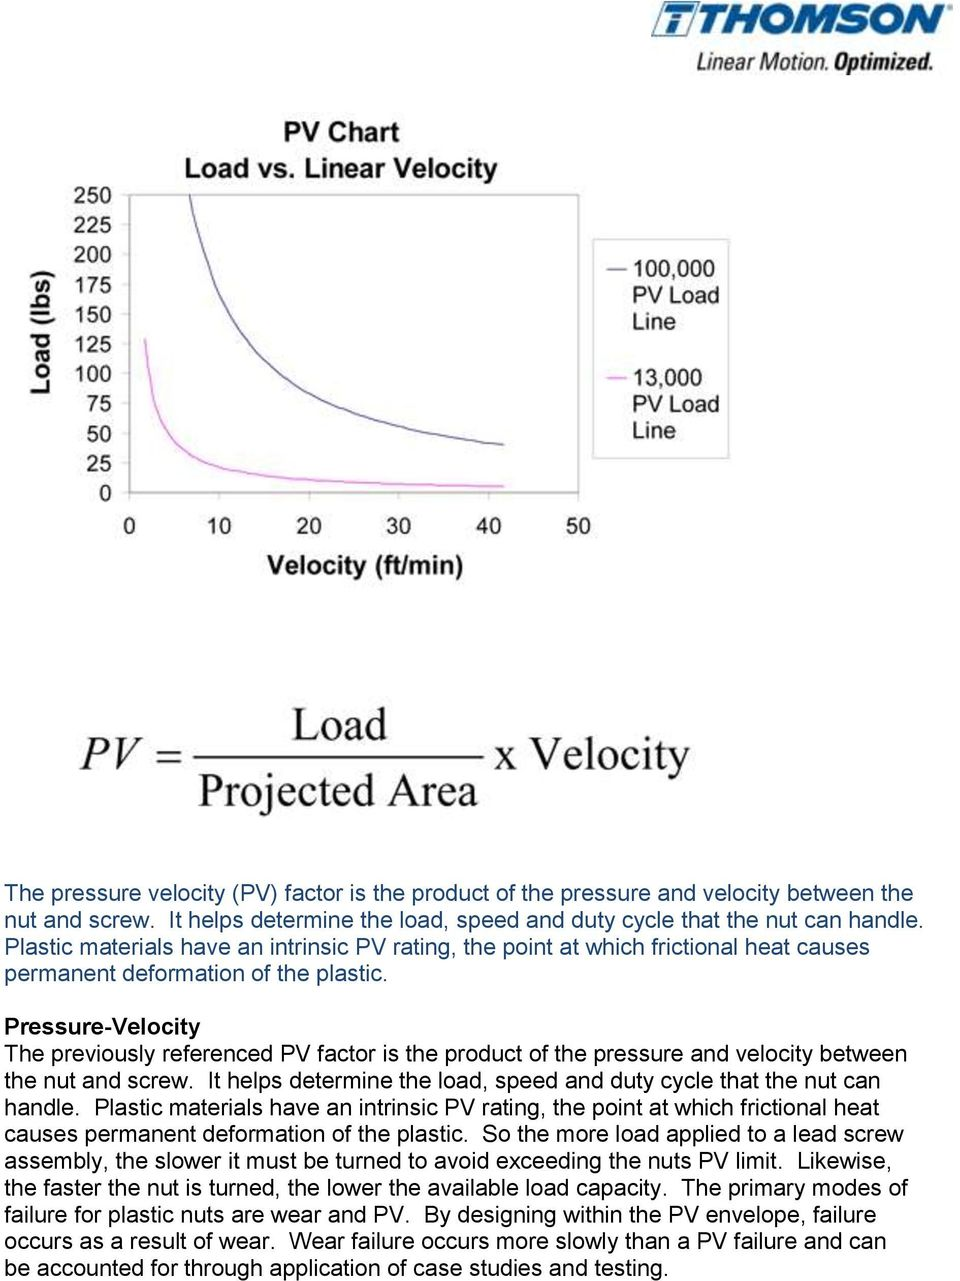 Pressure-Velocity The previously referenced PV factor is the product of the pressure and velocity between the nut and screw. It helps determine the load, speed and duty cycle that the nut can handle.